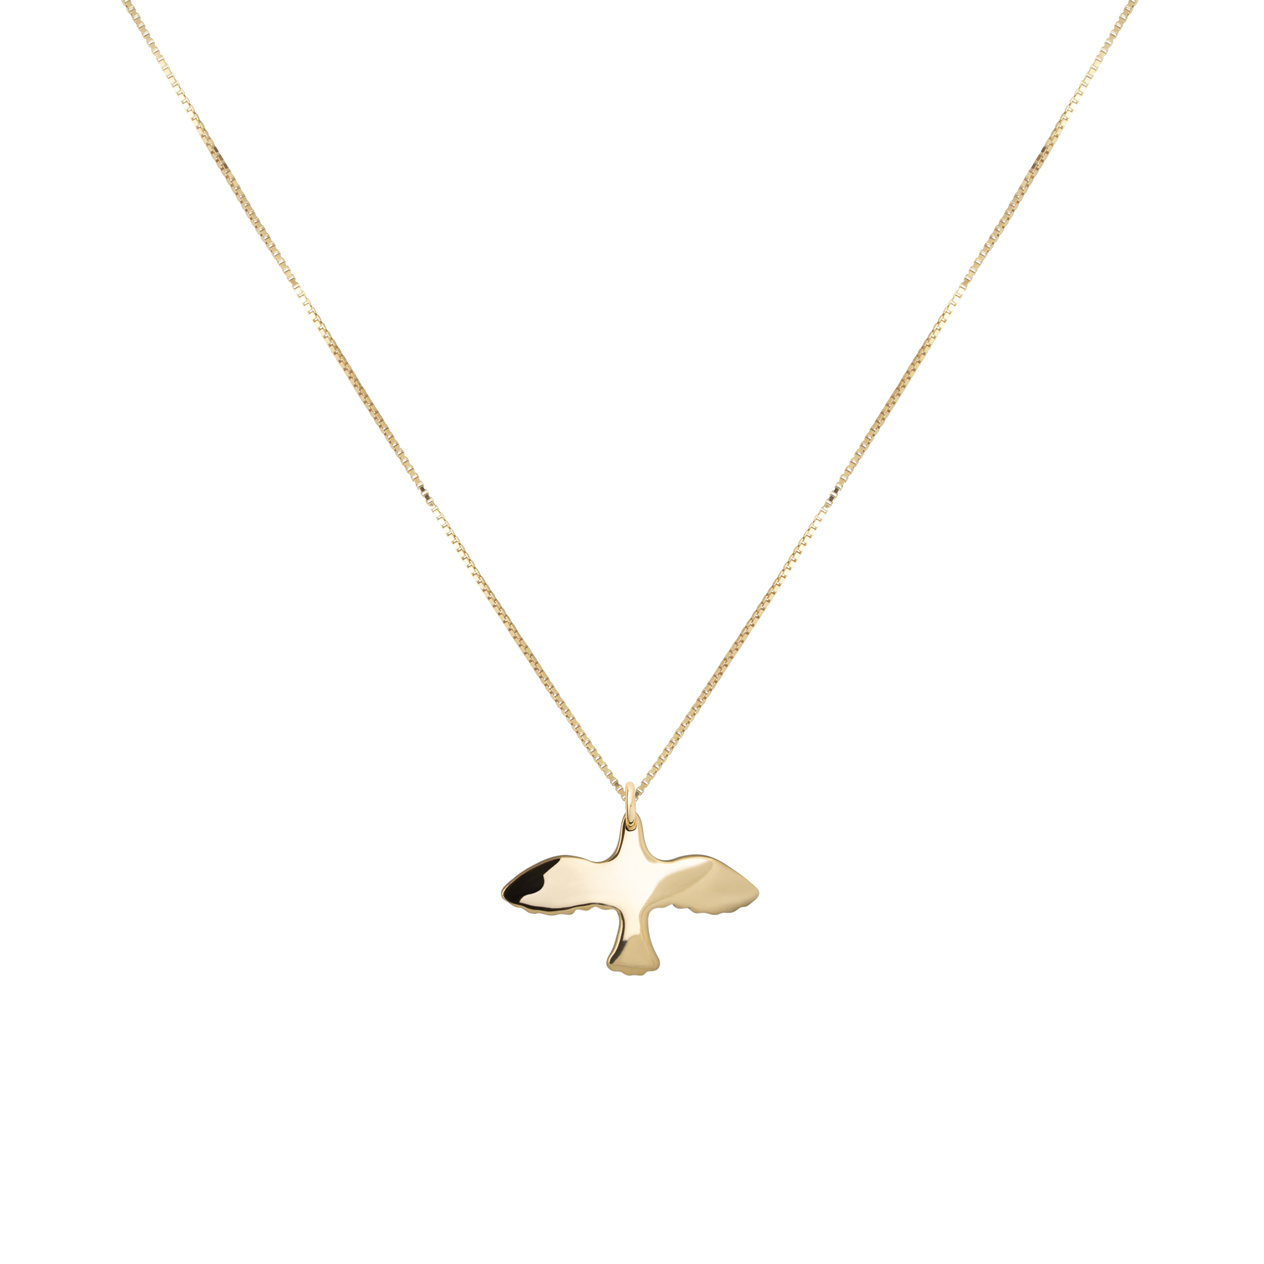 18K Gold Dove Necklace i gruppen SHOP / HALSBAND hos EMMA ISRAELSSON (neck044)